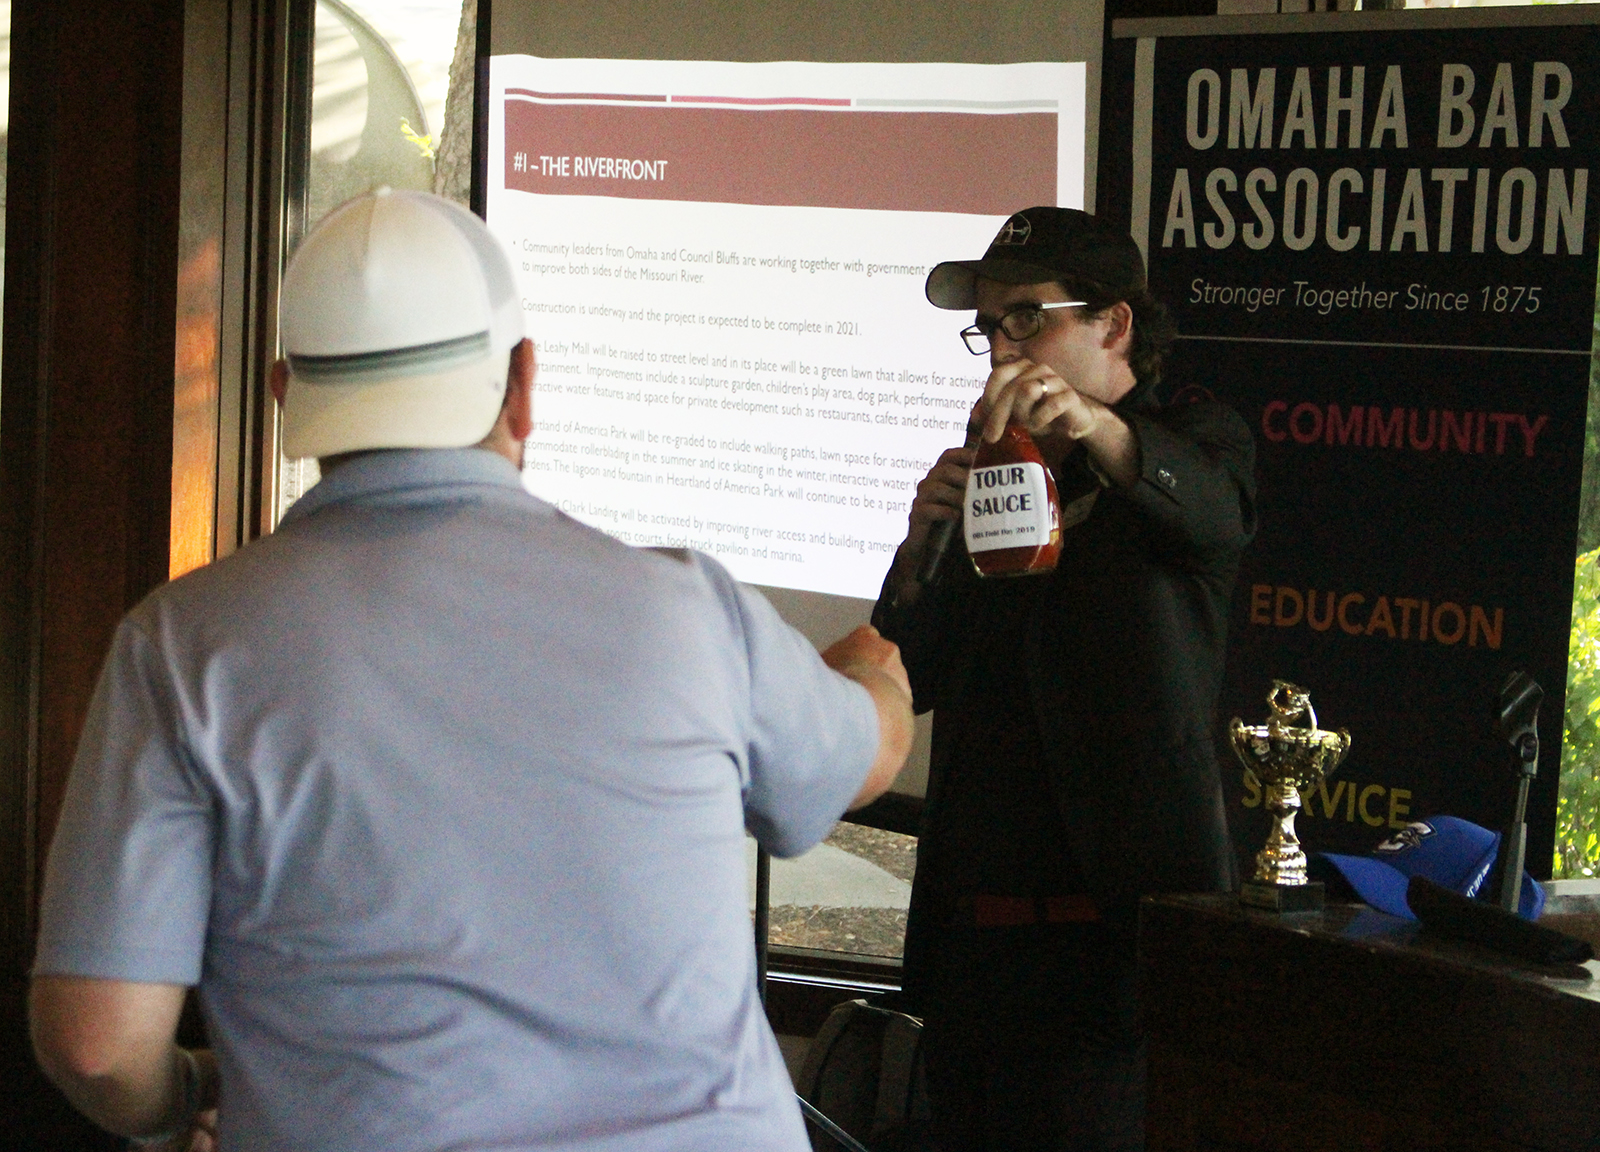 "Dave Sommers, executive director of the Omaha Bar Association, presents Patrick McNamara with the ""tour sauce"" award for having the je ne sais quoi of a professional golfer with a less-than-pro average. (Photo by Scott Stewart)"